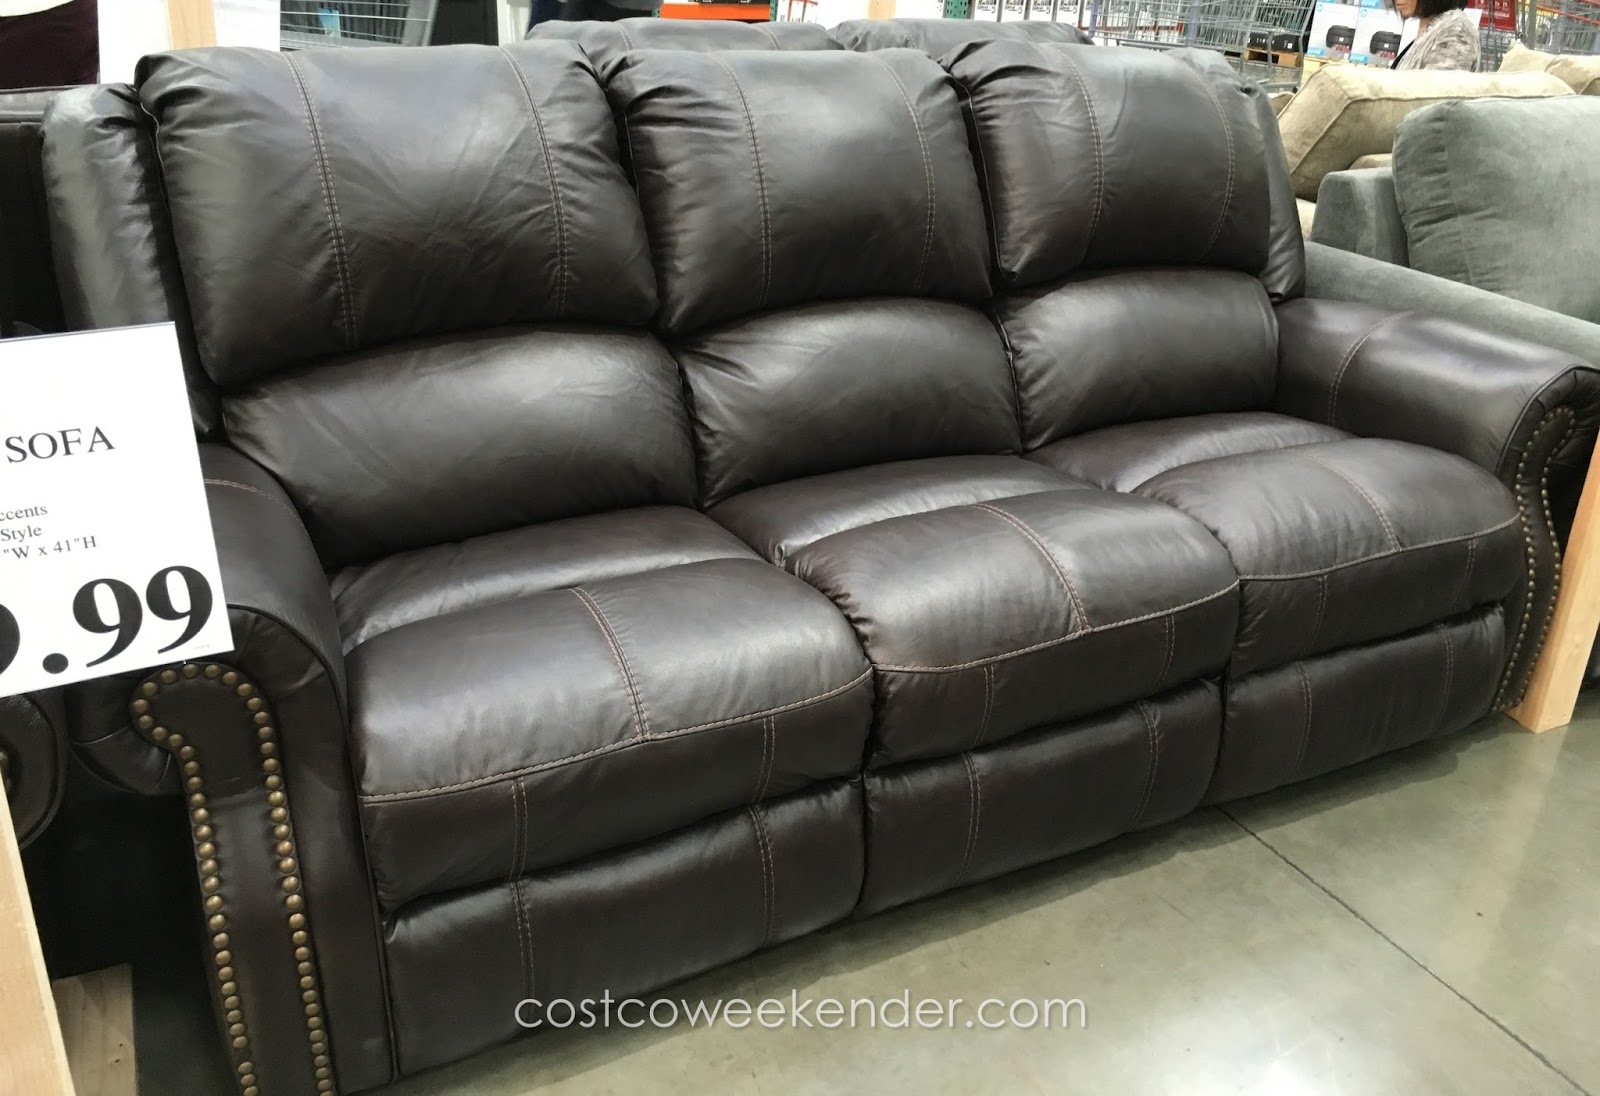 Costco Leather Sectional   Leather Sectional Costco   Costco Furniture Sofa